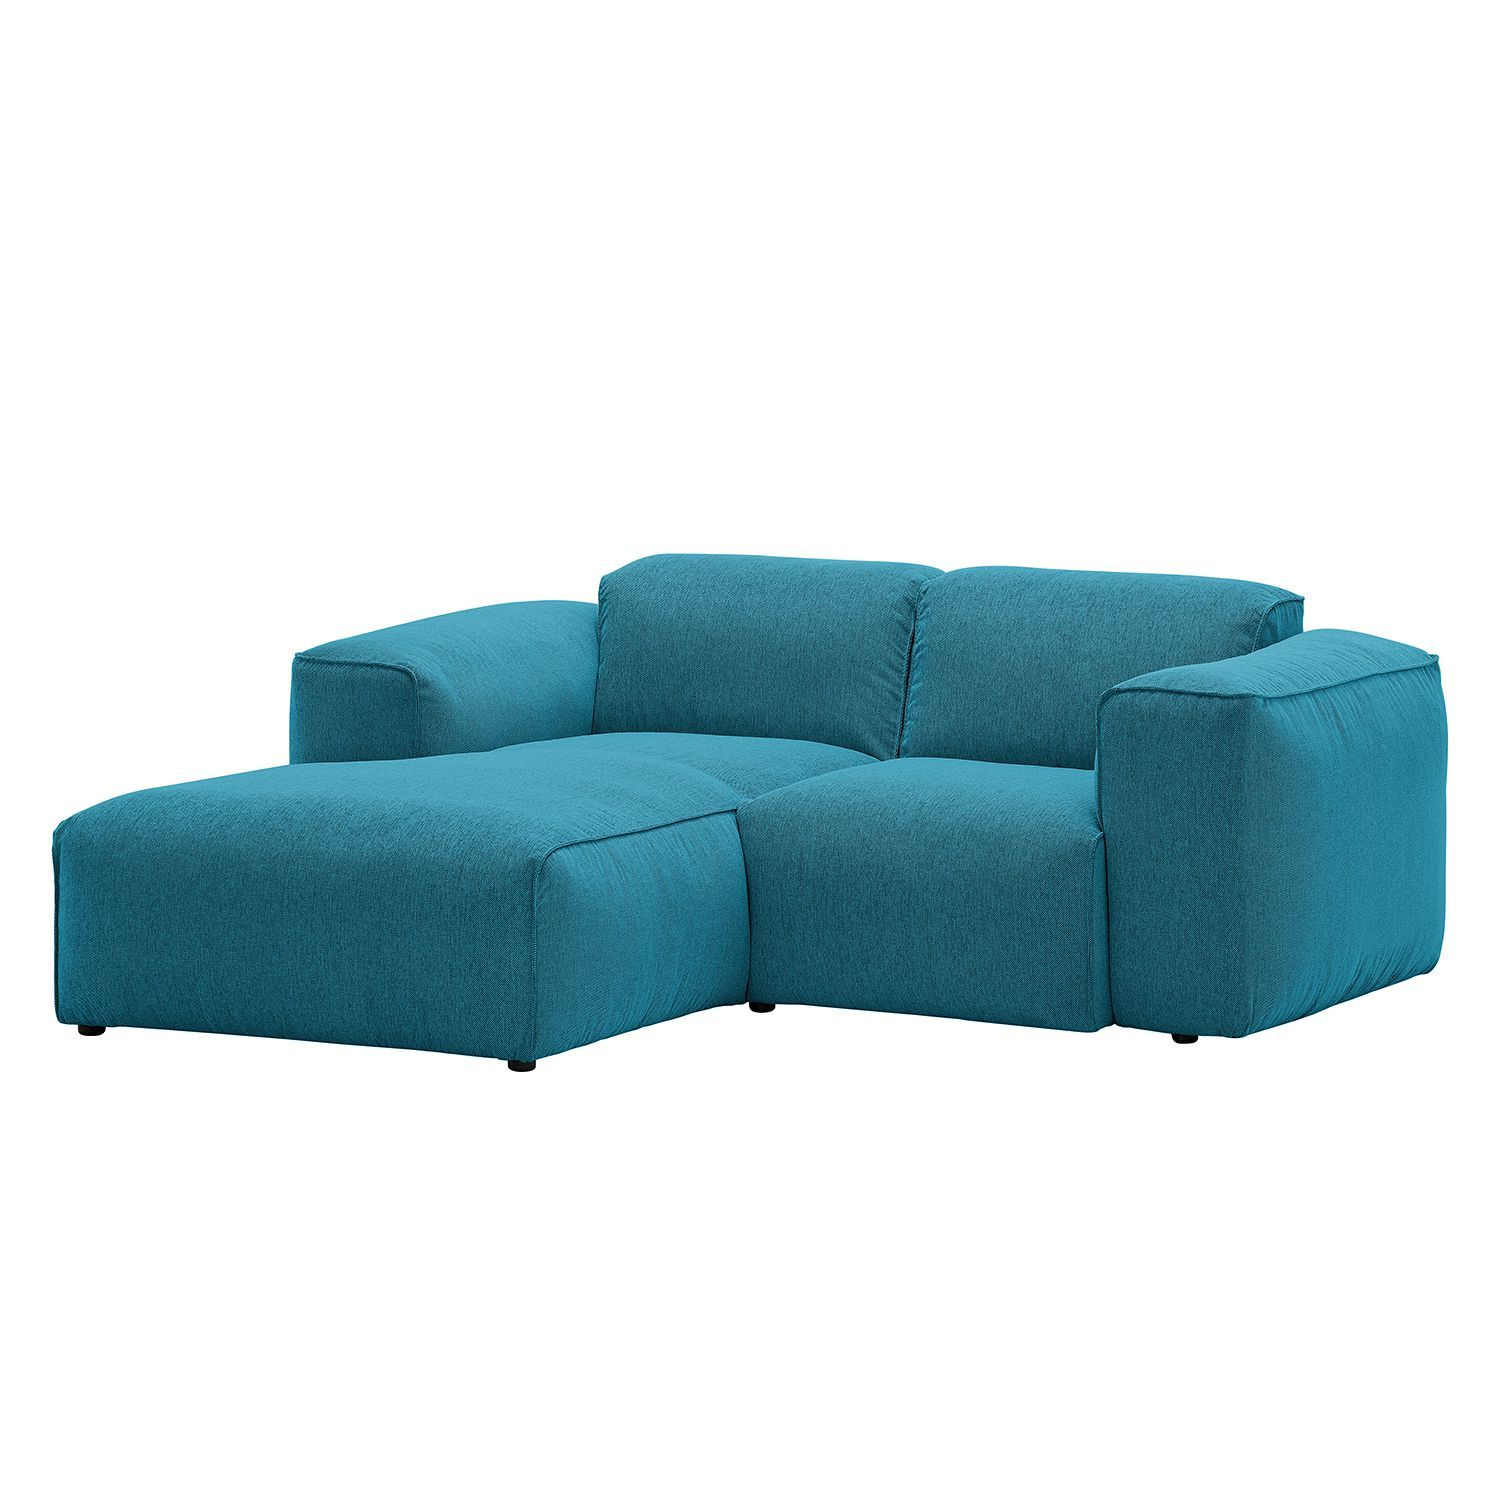 Big Sofa Kolonialstil Mit Schlaffunktion Latest Sofa Designs L Shaped Design Polsterecke Couch Wohnlandschaft Sofagarnitur Big Sofa E Ecksofas Sofa Ecksofa